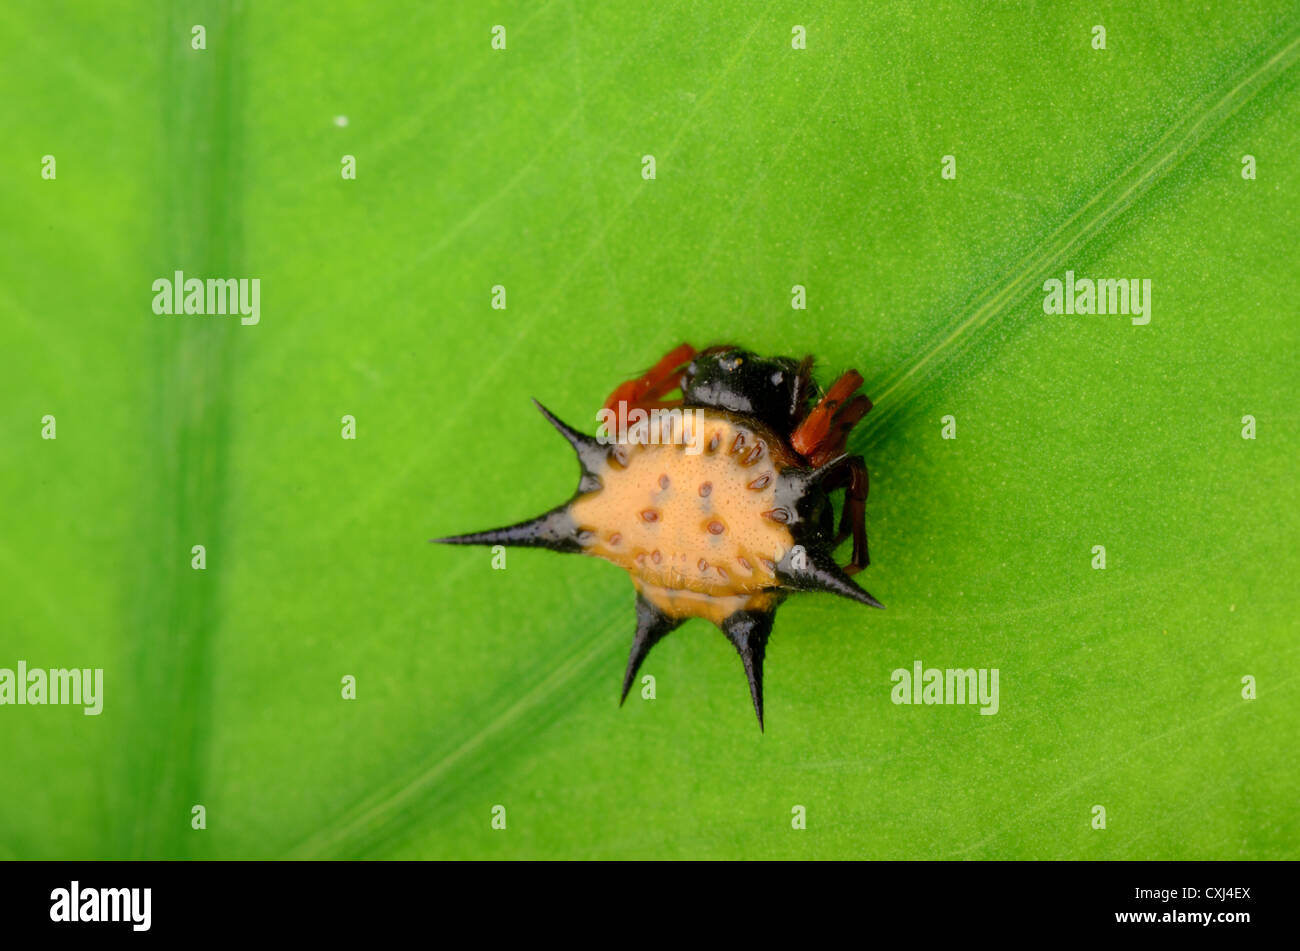 spiny spider - Stock Image